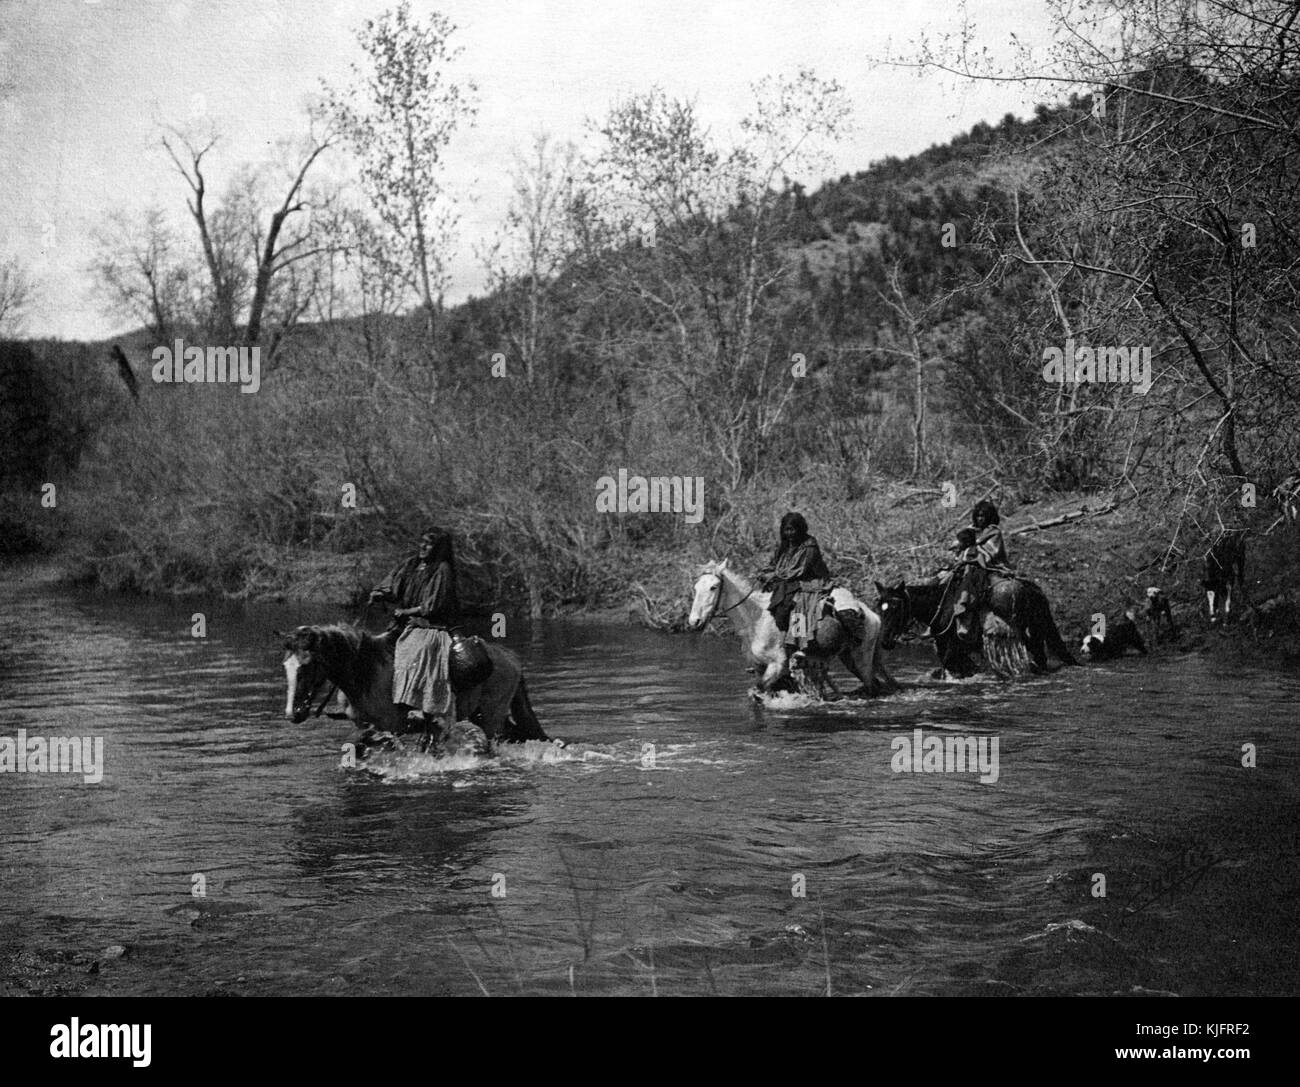 Photograph of a group of Native American women fording (crossing a river at a shallow place) on horseback, titled - Stock Image